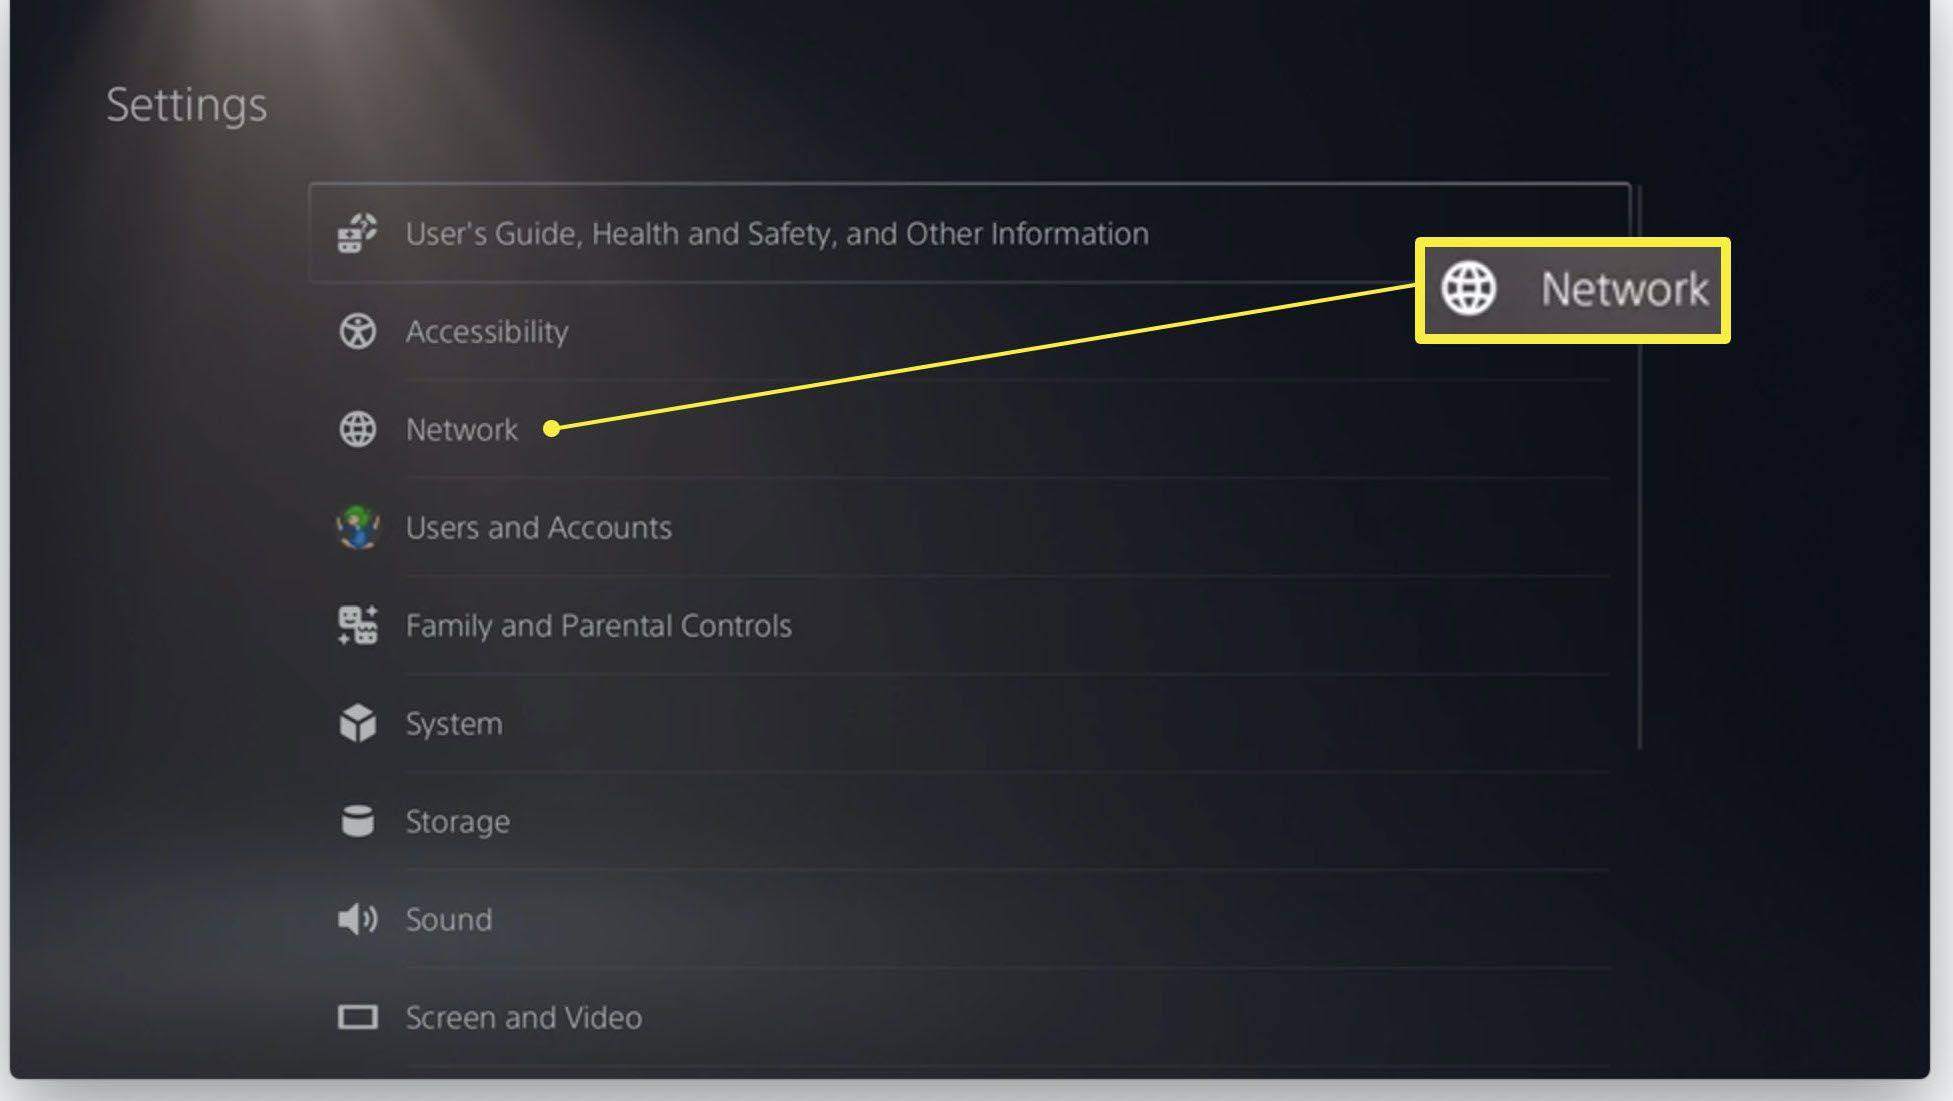 PlayStation 5 Settings with Network highlighted